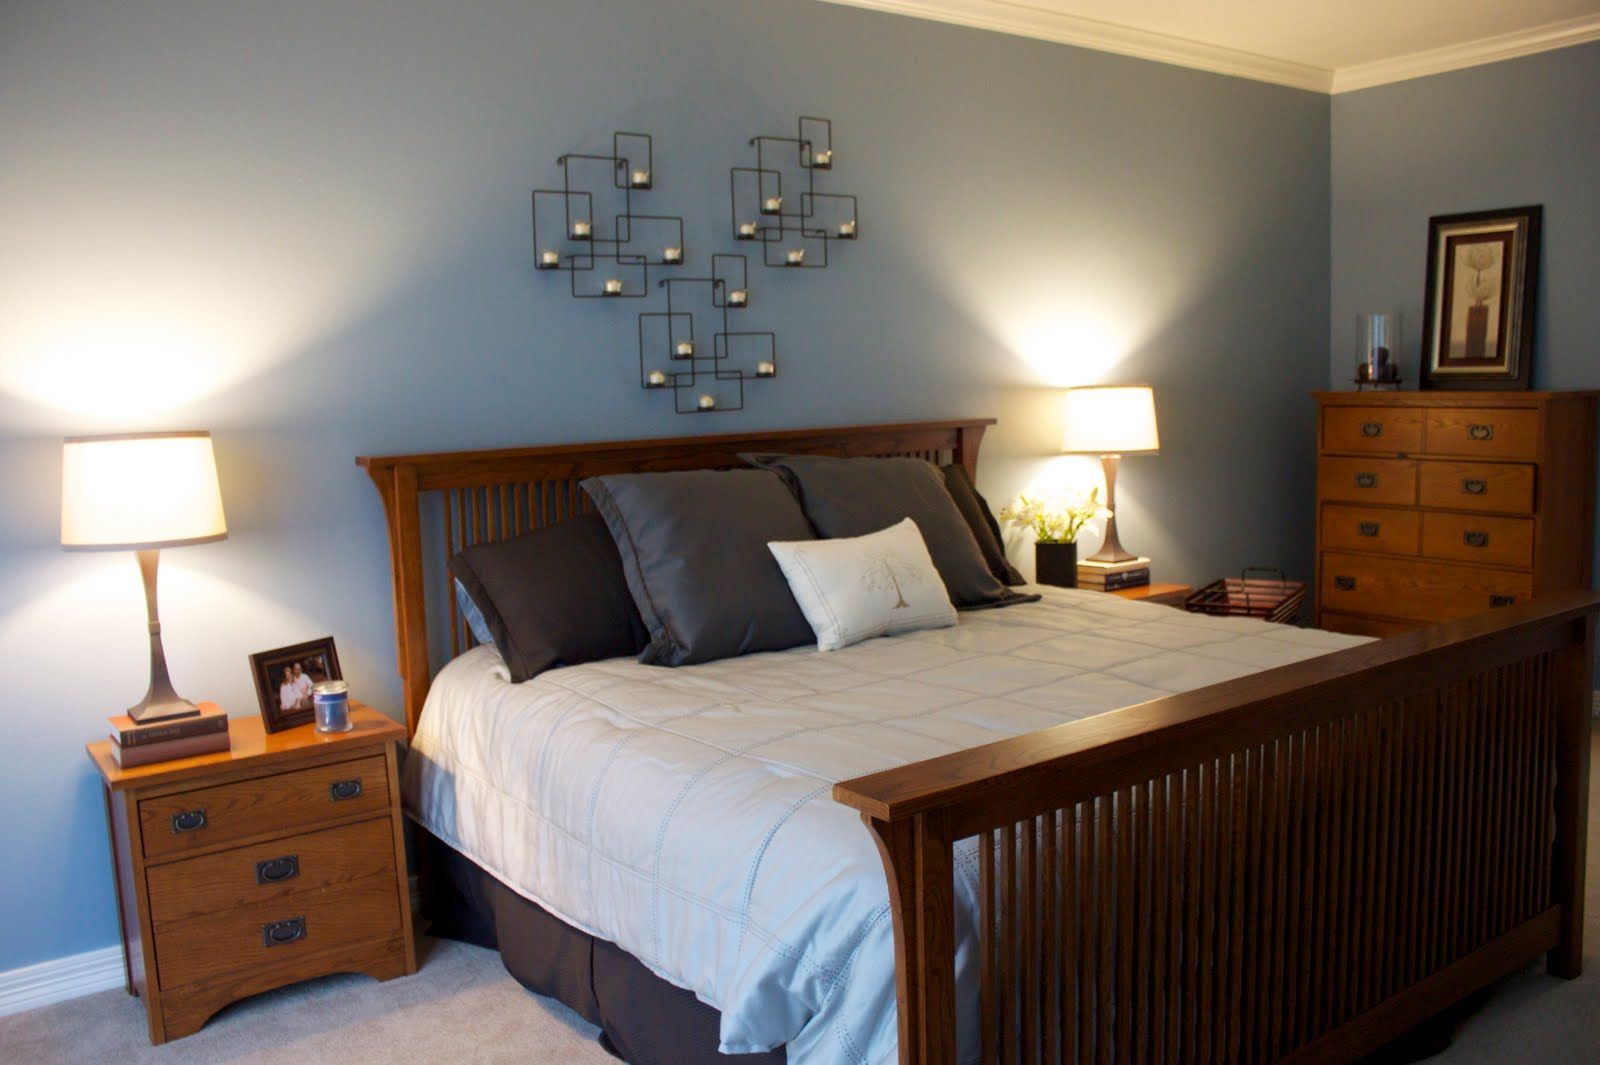 Bedroom wall decorating ideas blue - Soft Gray Blue Master Bedroom Color Design Looks Simple Yet Peaceful